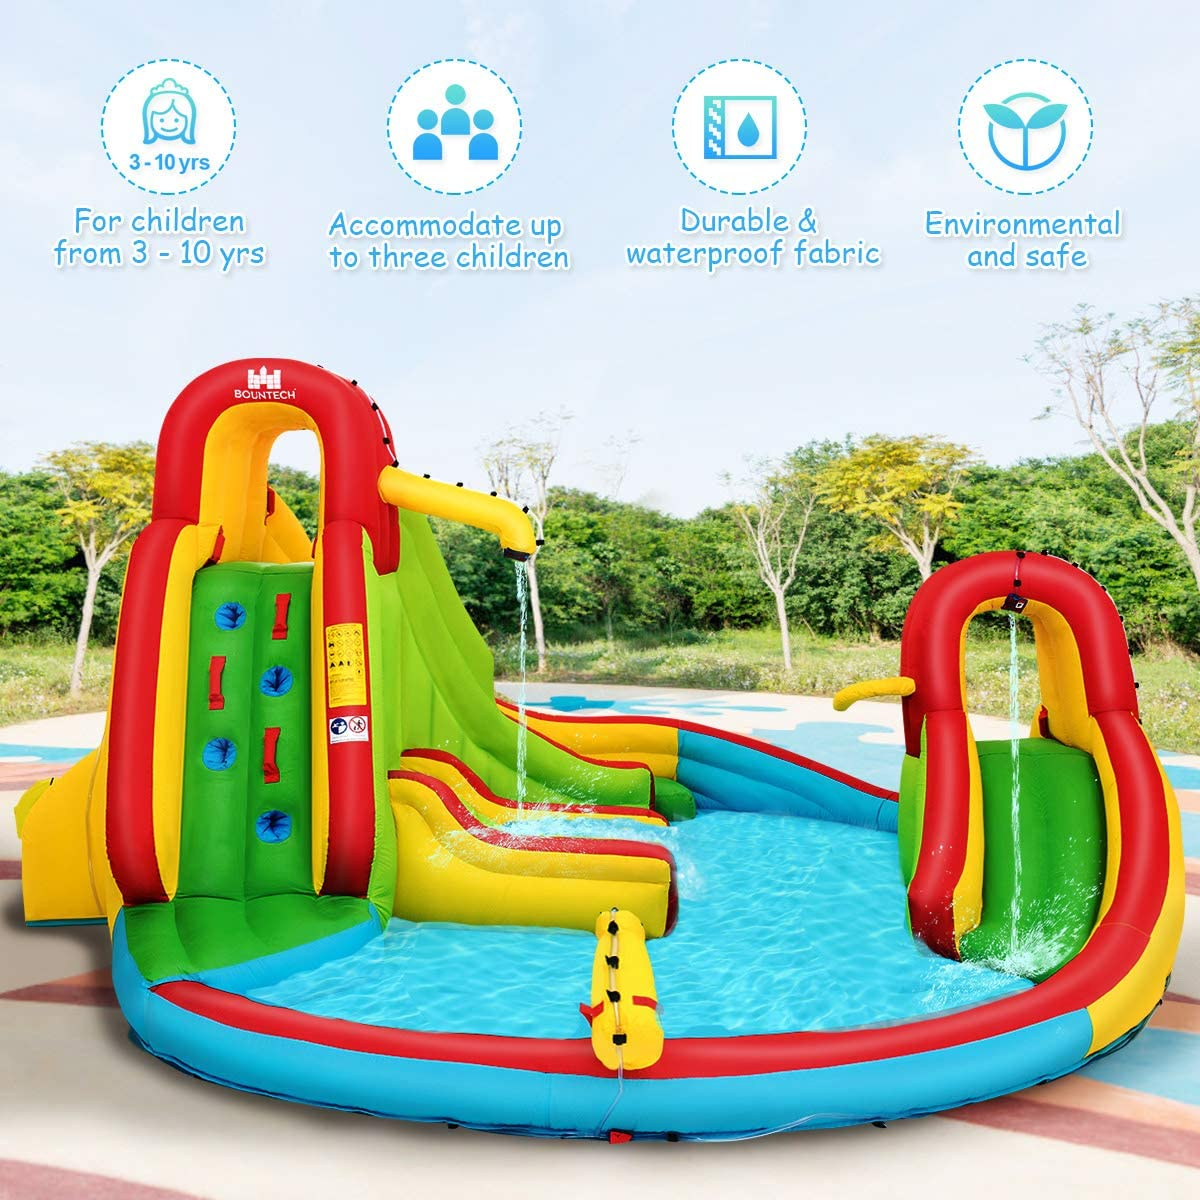 Repairing Kit Inflatable Water Park Slide with Climbing Wall Basketball Rim GYMAX Bouncy Water Castle Stakes 480 x 420 x 233 cm Water Gun Splash Pool Including Carry Bag